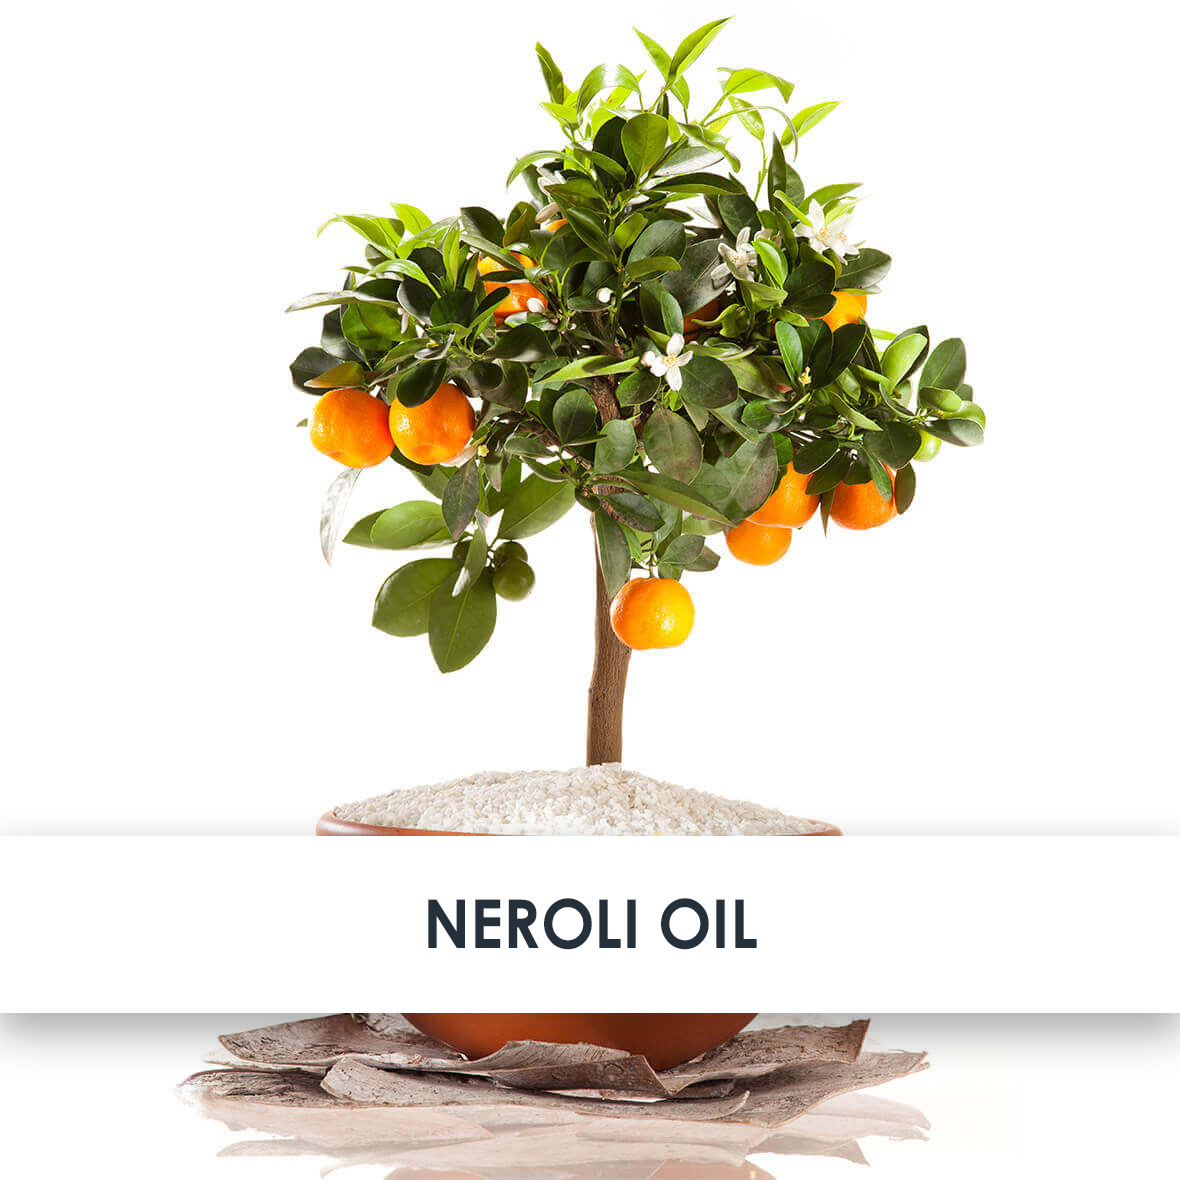 Neroli Oil Skincare Benefits